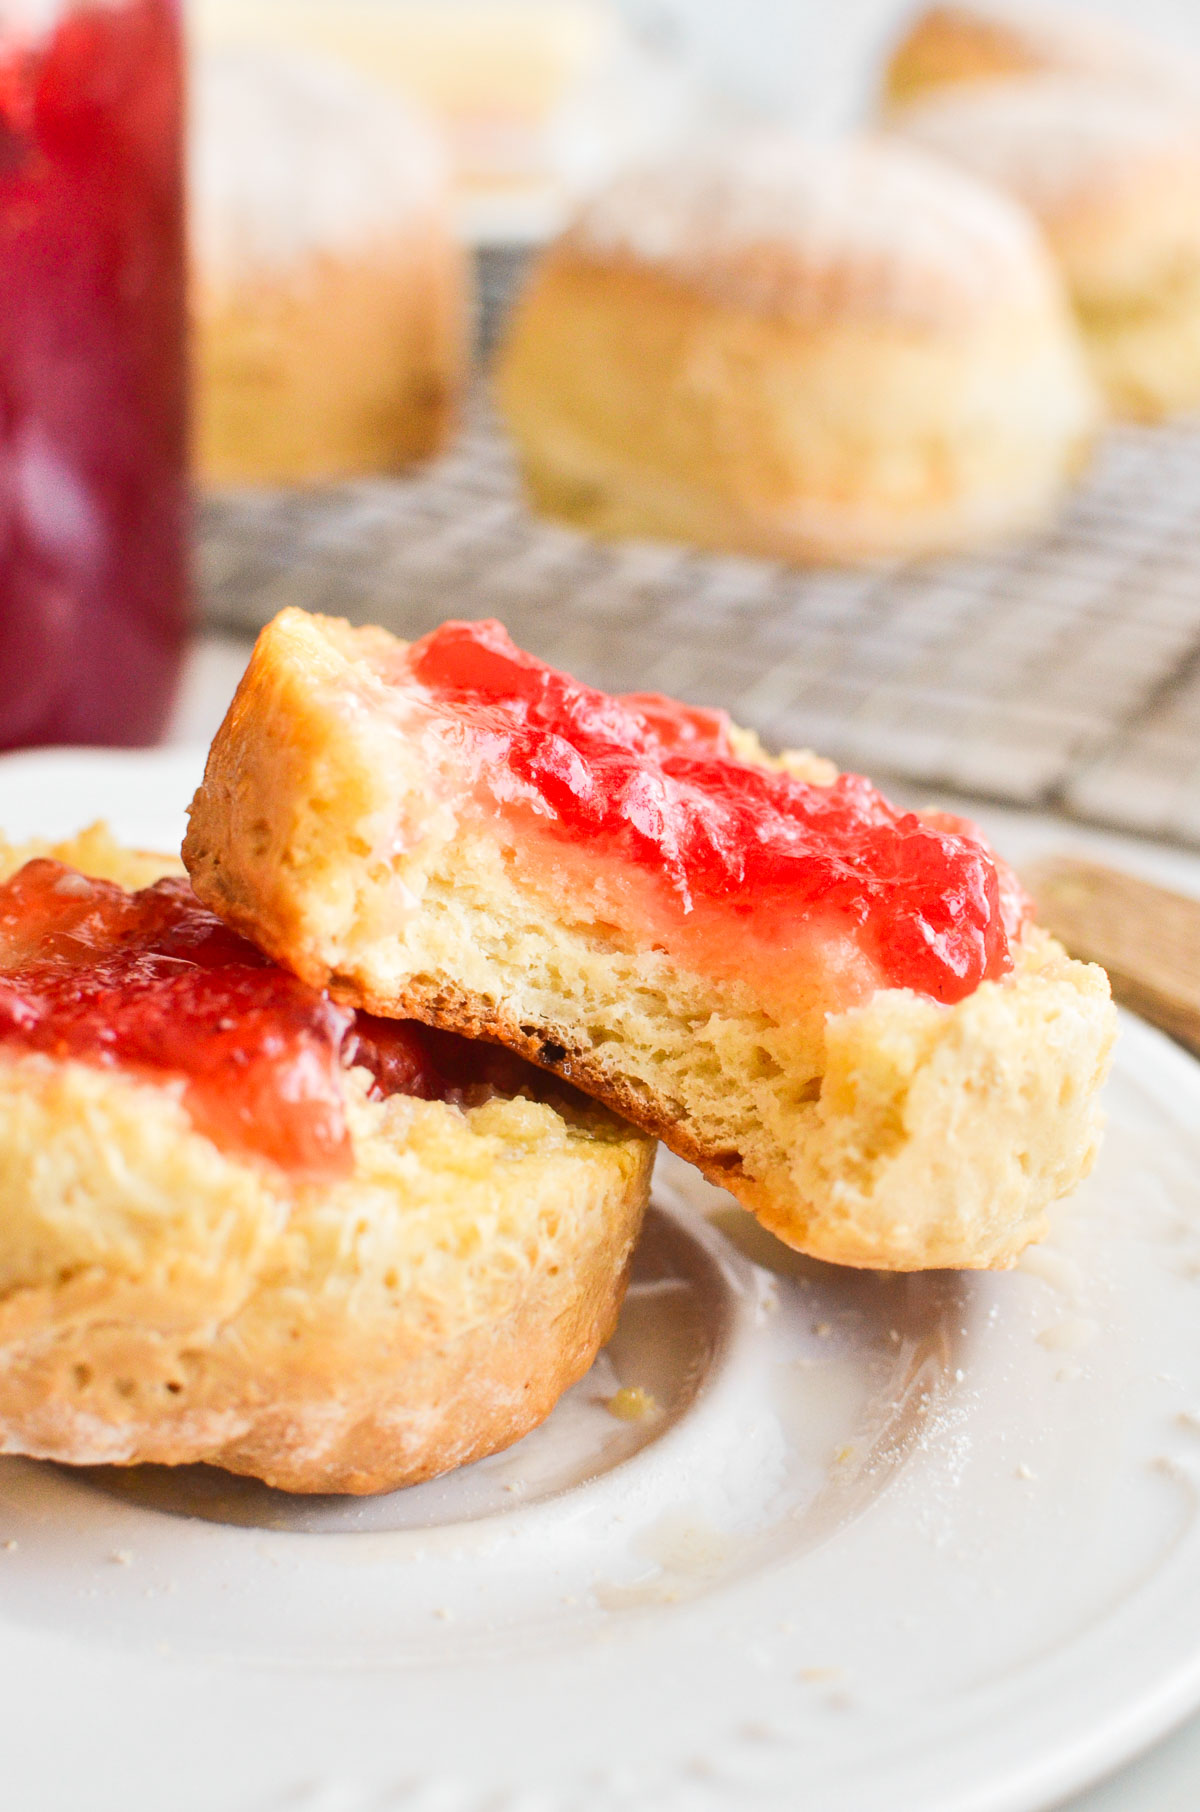 split soda scone with butter and jam